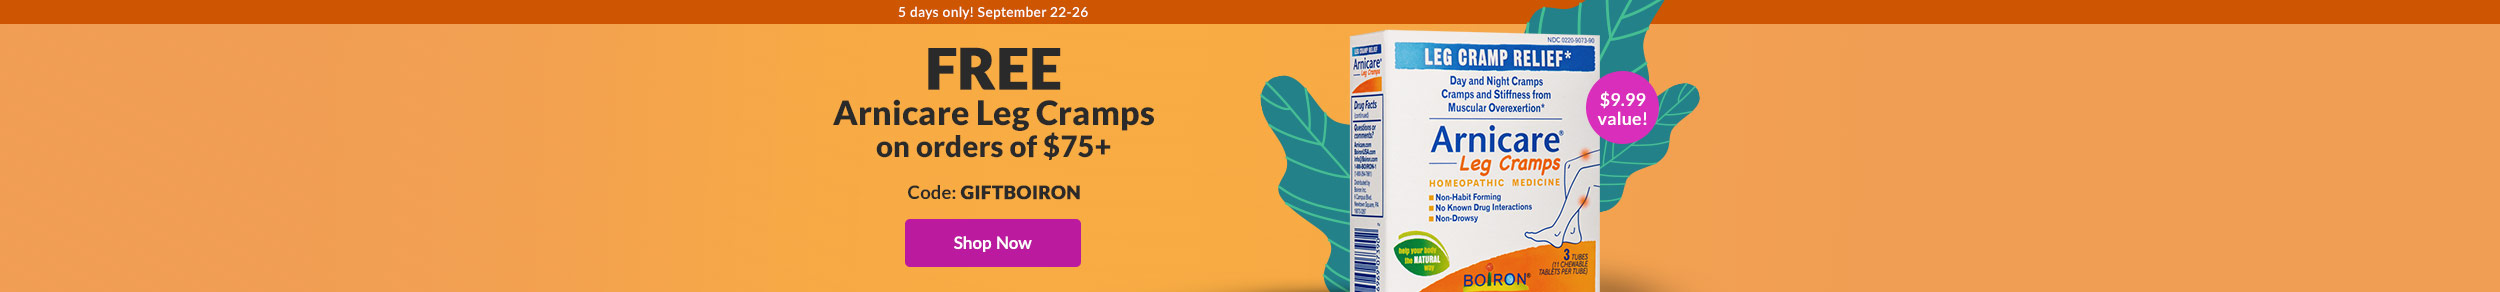 5 days only! September 22-26: FREE Arnicare Leg Cramps on orders of $75+. A $9.99 value! Code: GIFTBOIRON. Shop Now!